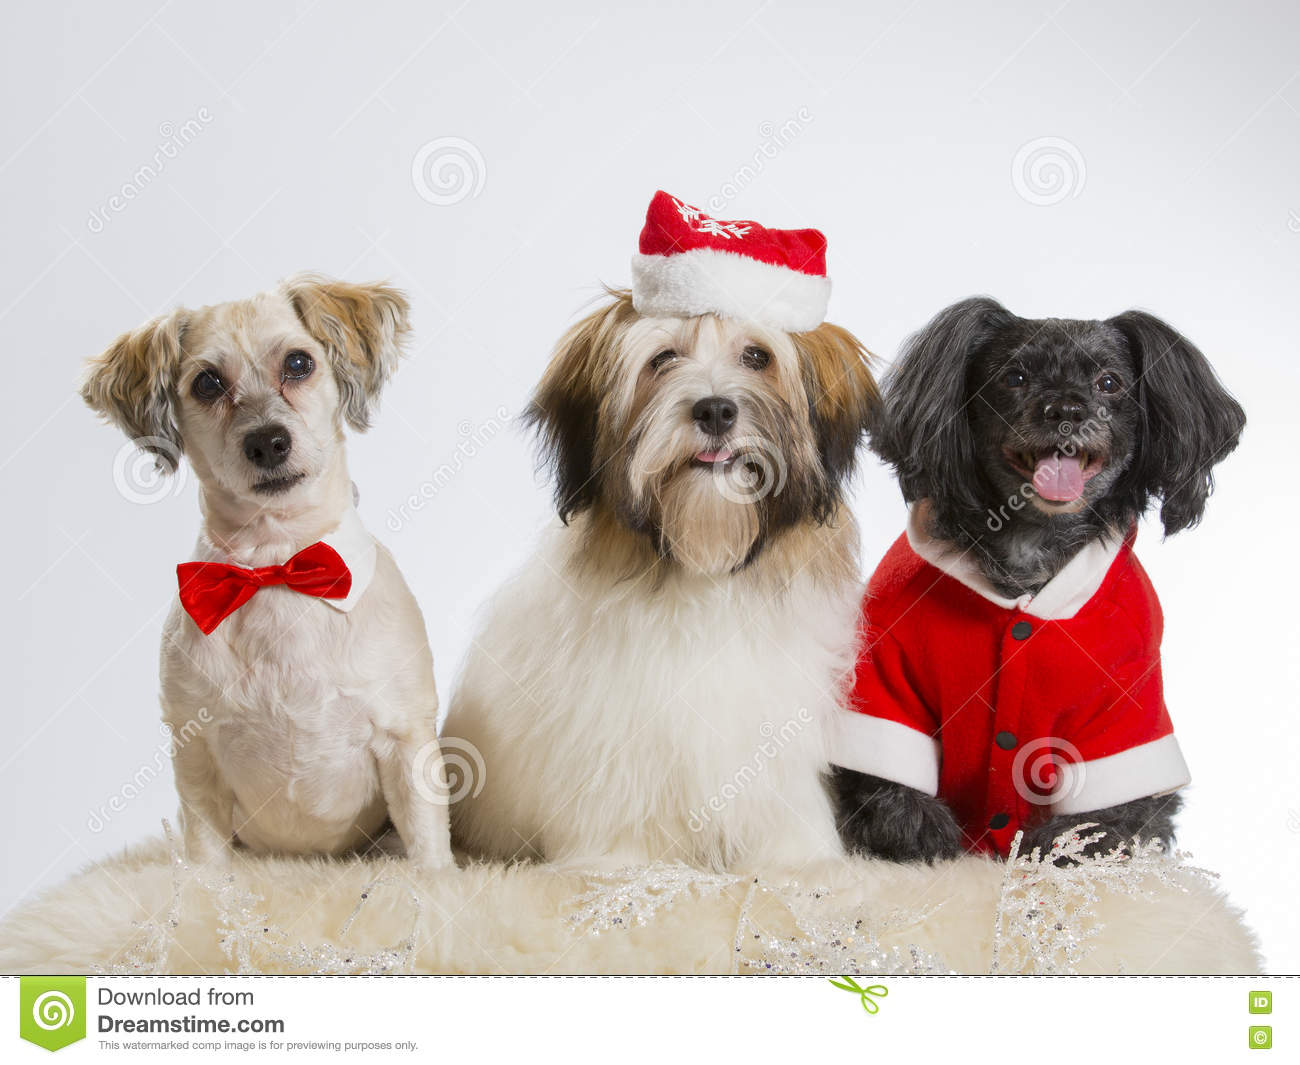 Three Christmas dogs side by side.